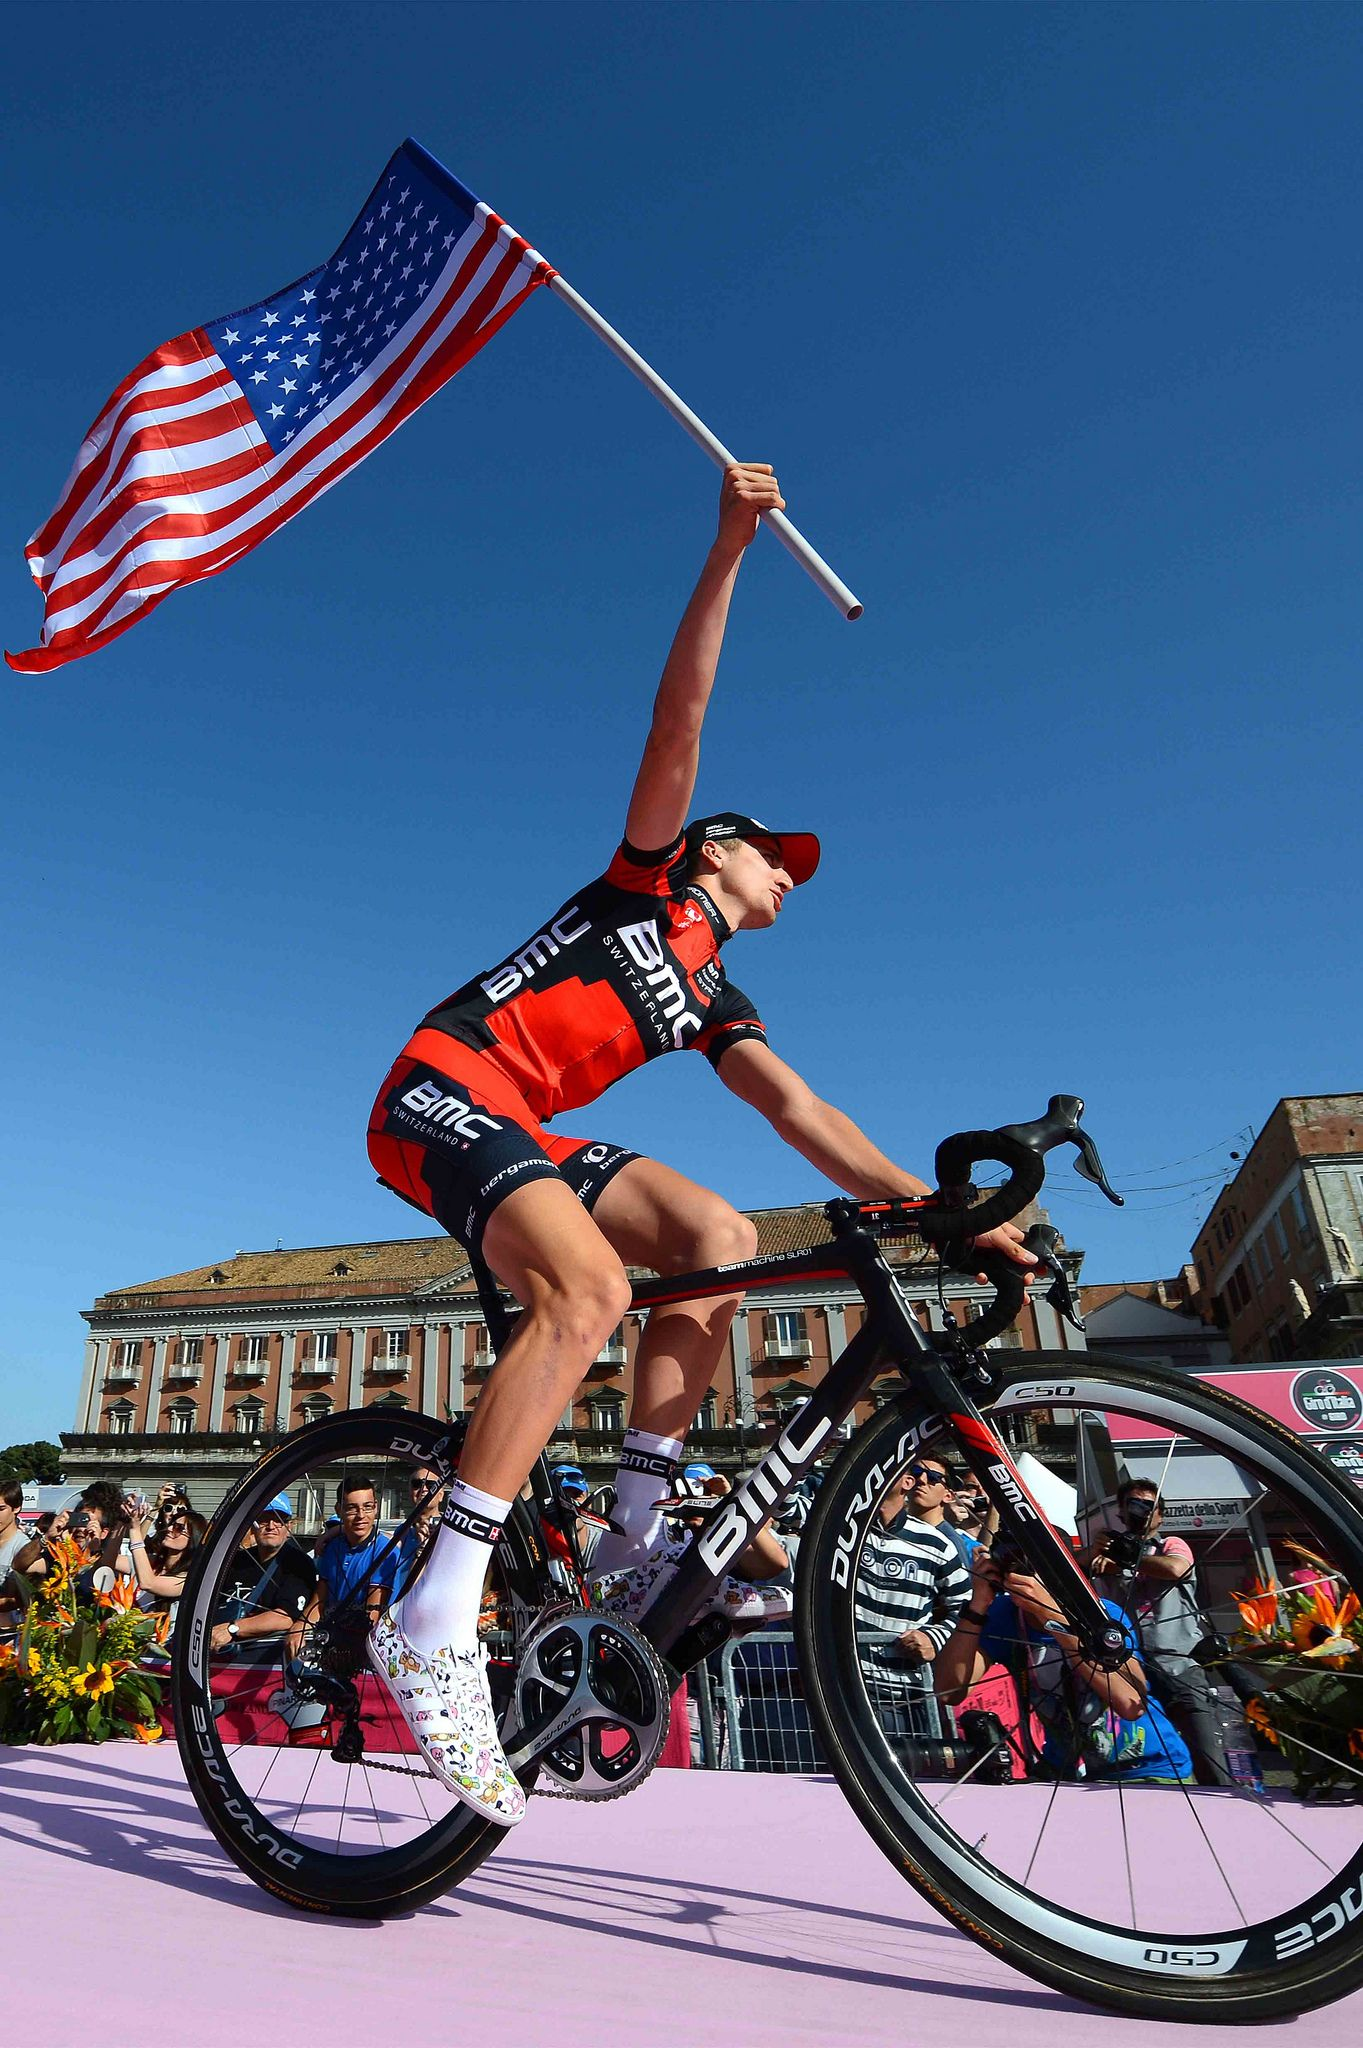 Giro2013 Phinney Of Bmc Waving The Flag At The Teams Presentation Ride Bicycle Cycling Photos Track Bike